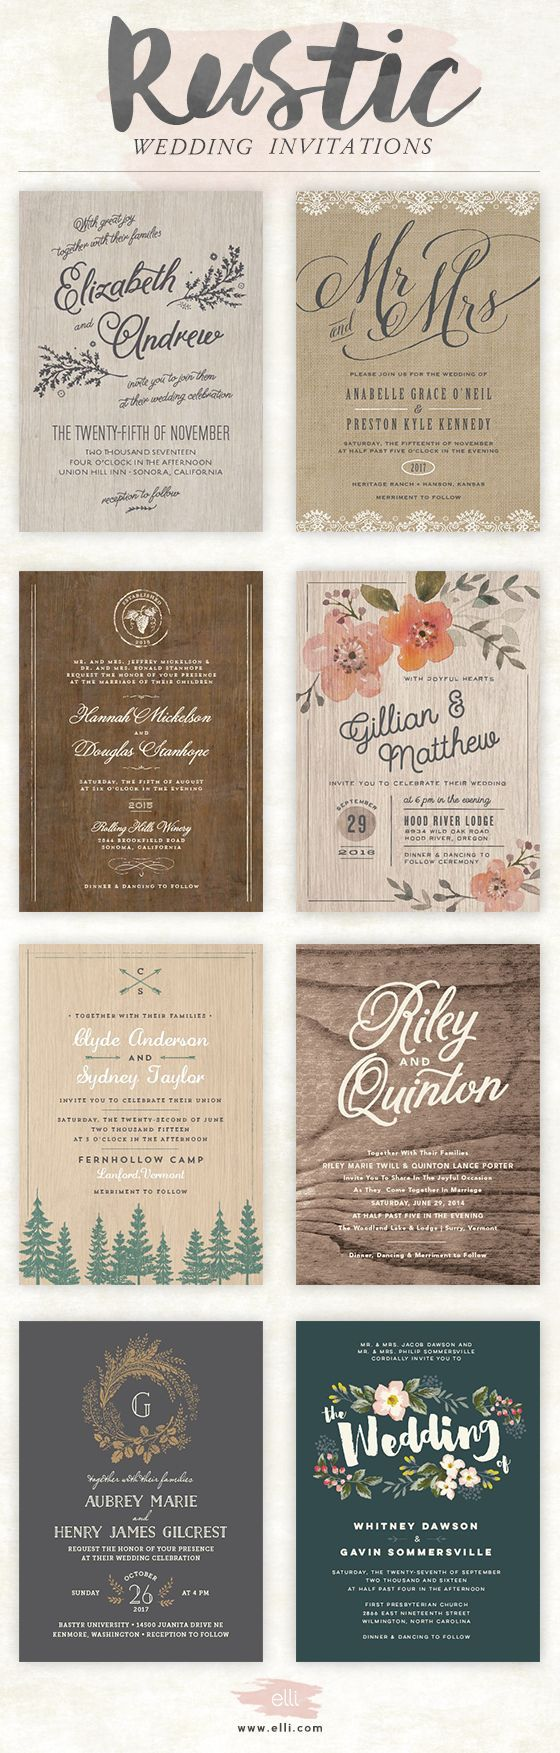 wedding planning checklist spreadsheet free%0A Rustic wedding invitations   bellacollina com   Bella Collina Weddings